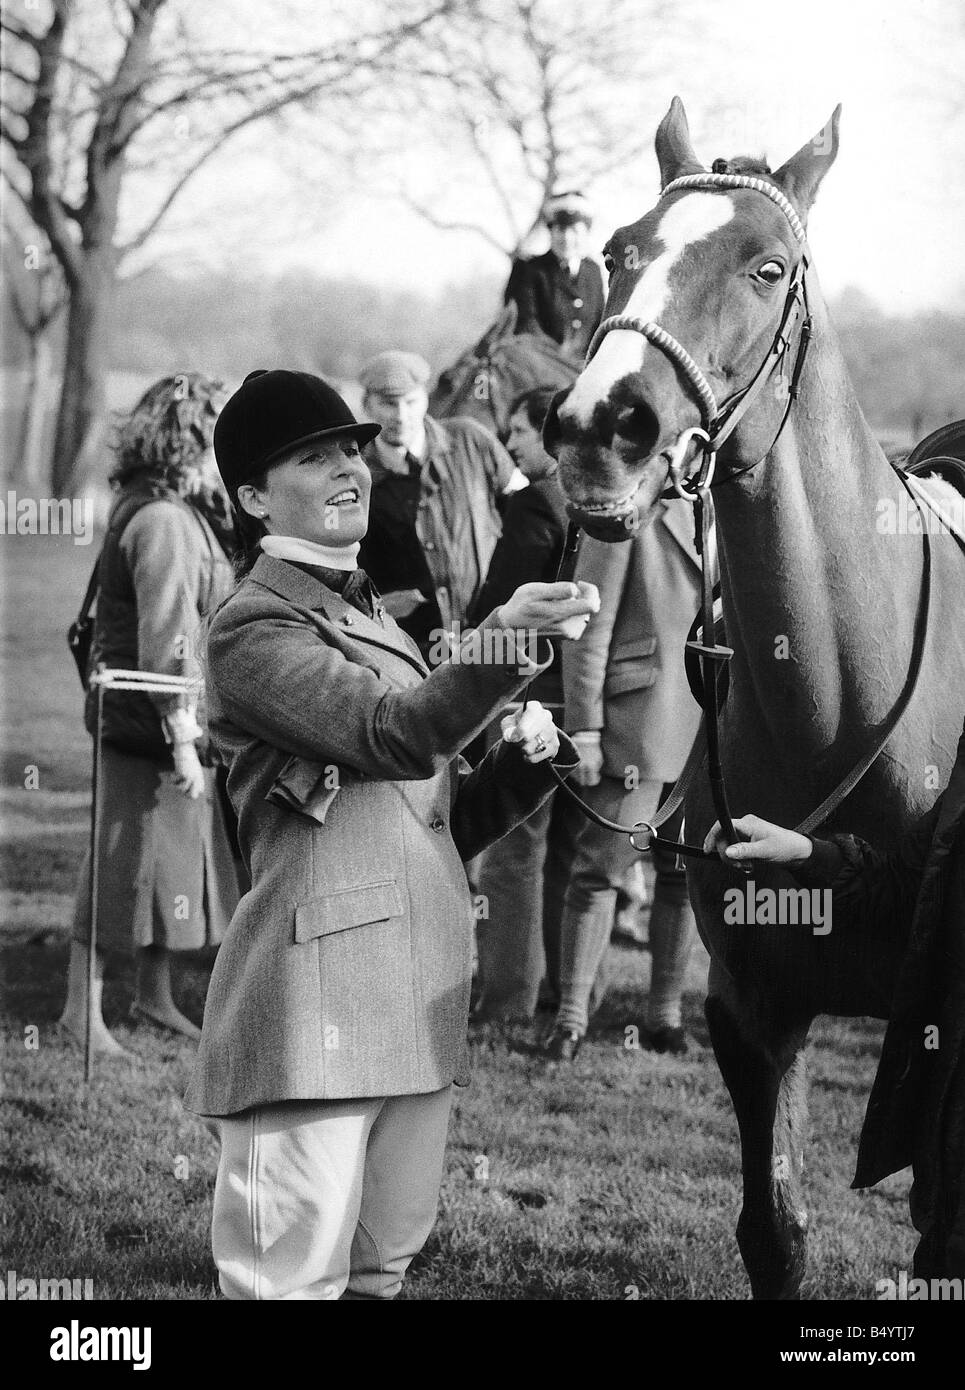 Duchess of York before mounting the horse Aldaniti winner of the 1981 Grand National to ride around the grounds - Stock Image